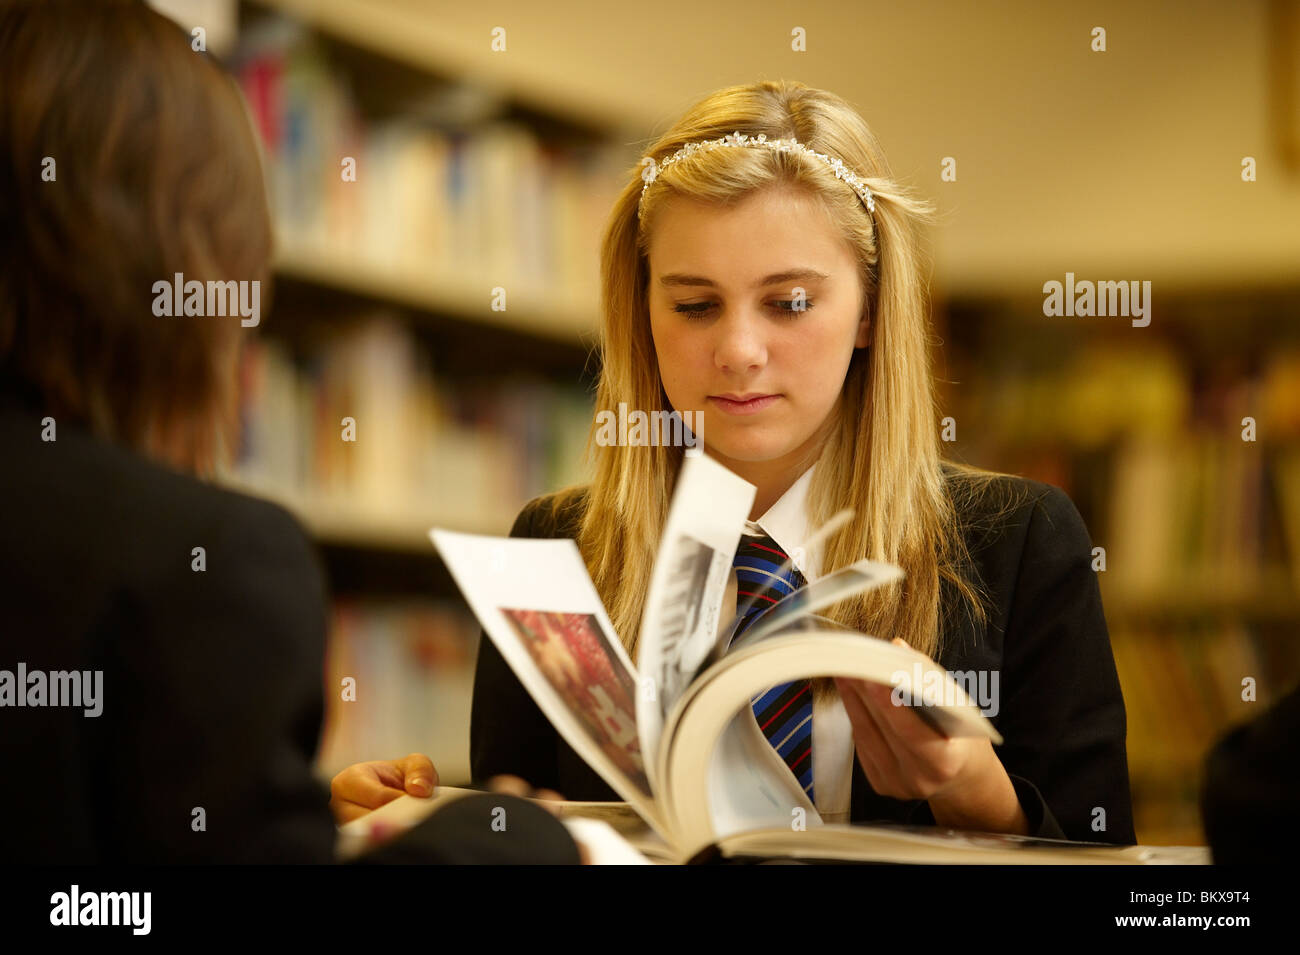 girl in library - Stock Image